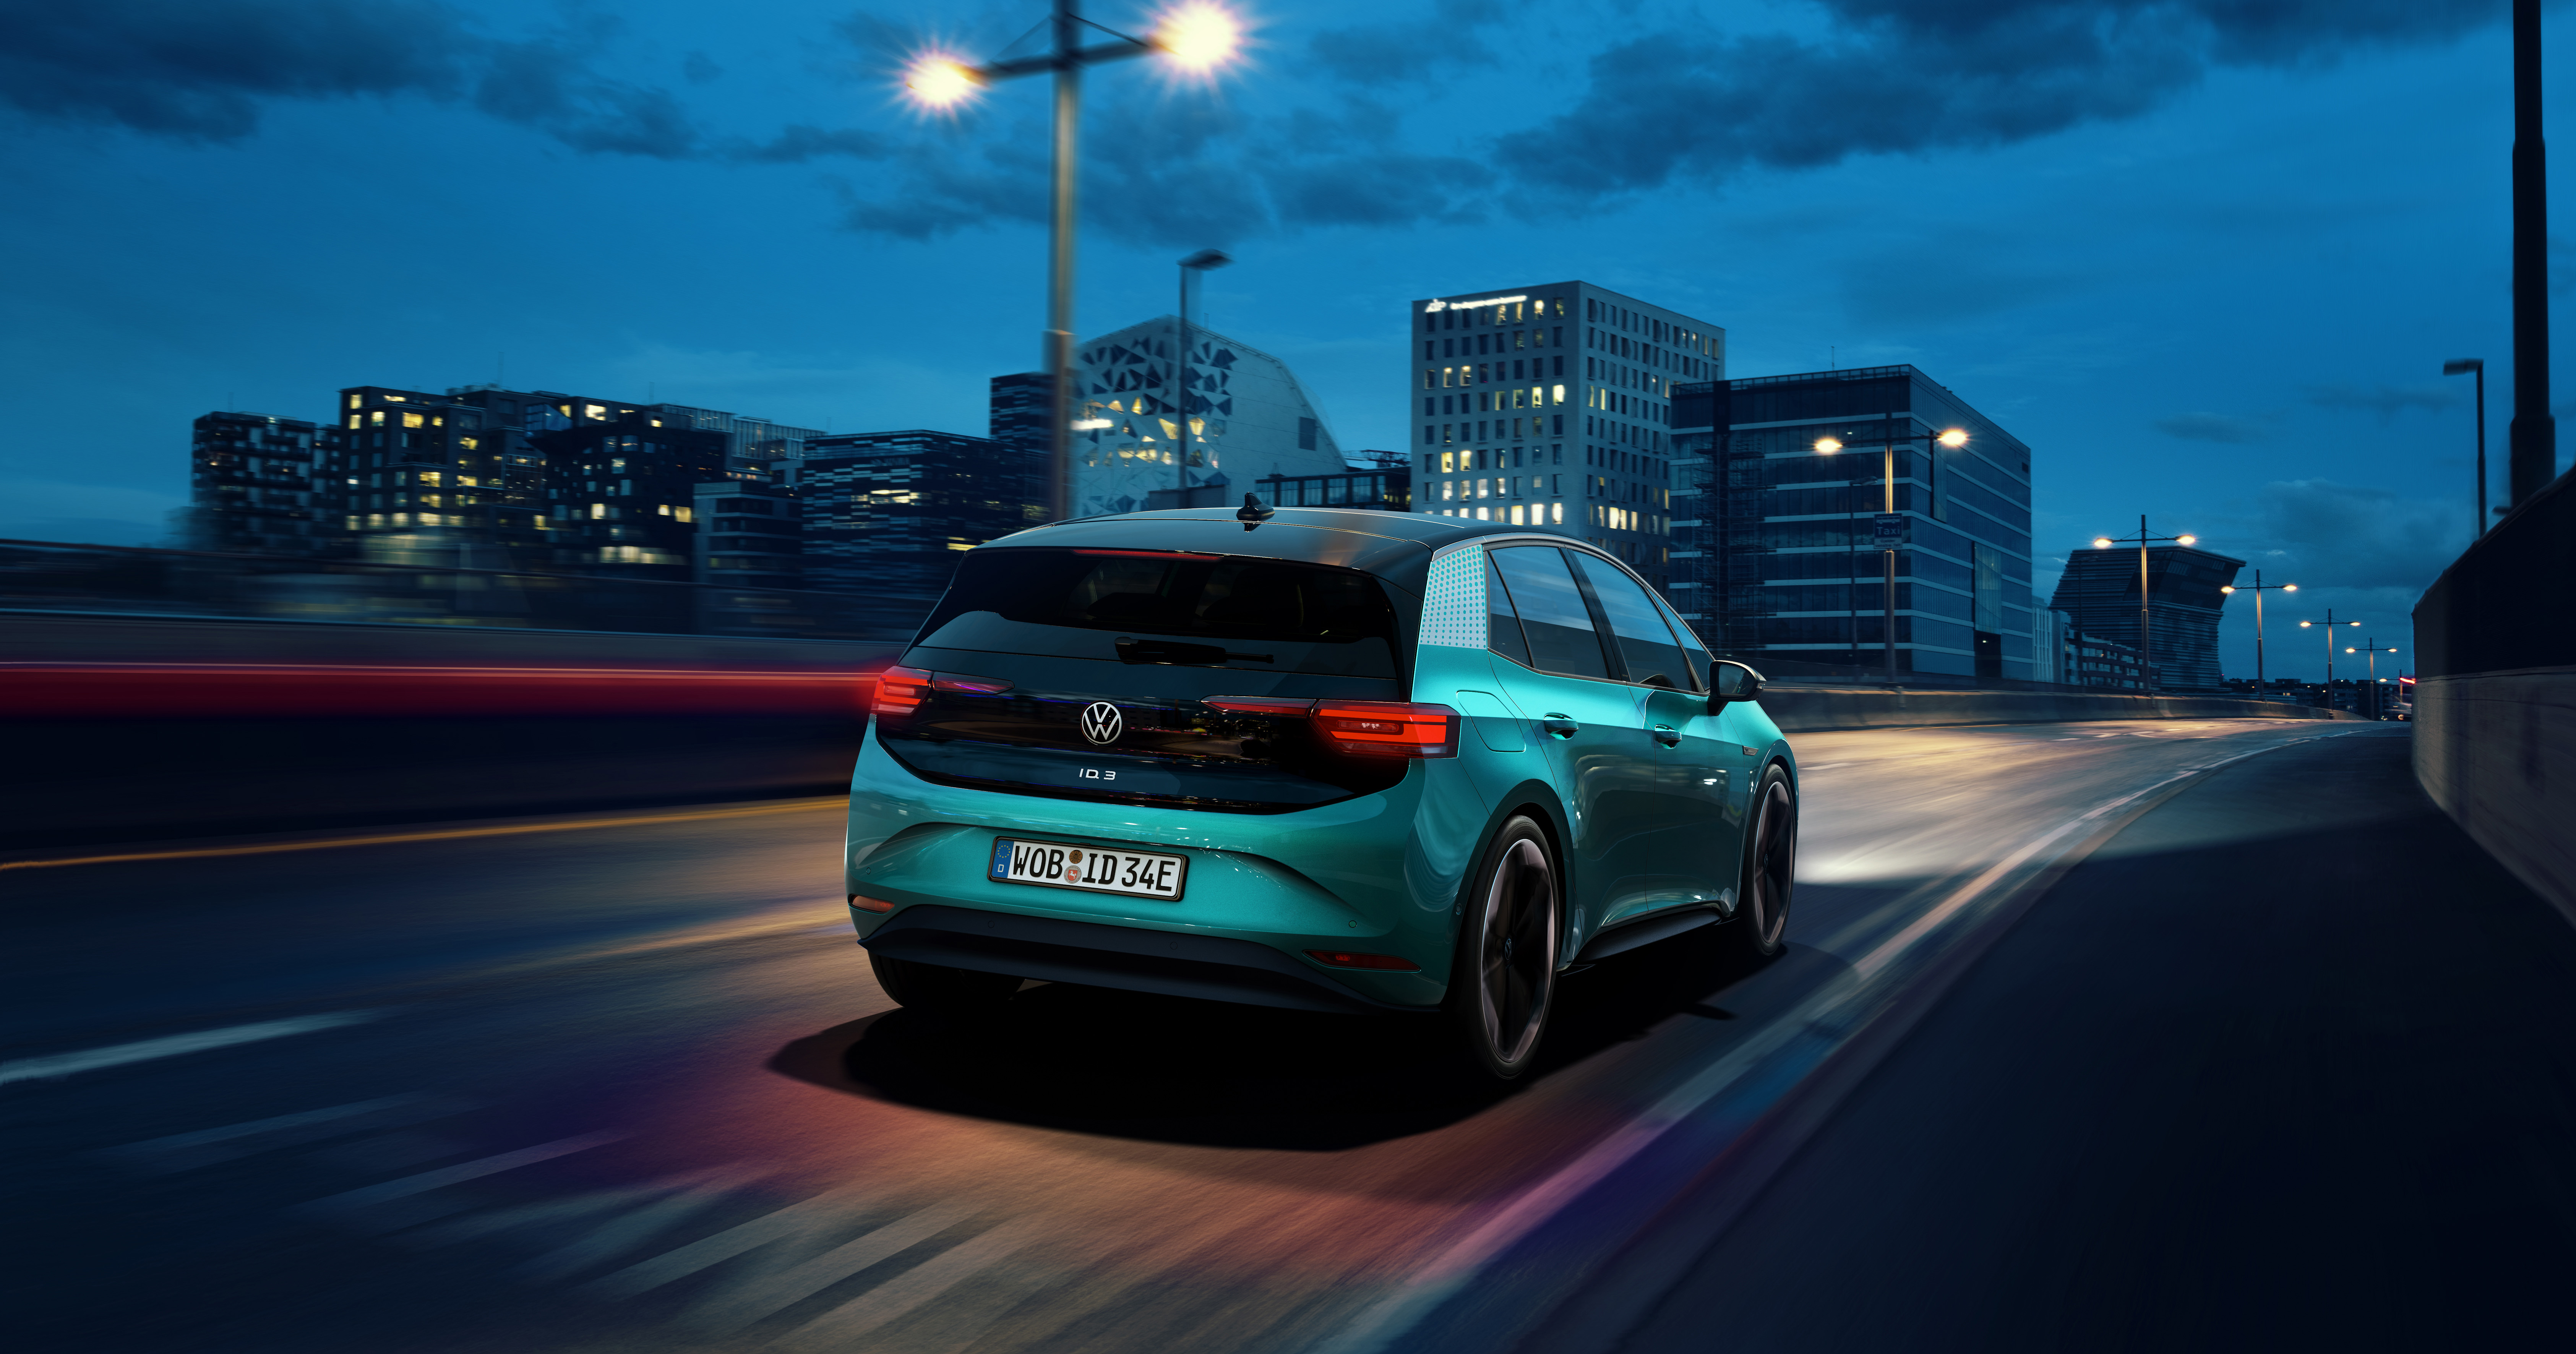 Volkswagen Unveils The Id 3 Its First Electric Car For The Masses The Verge